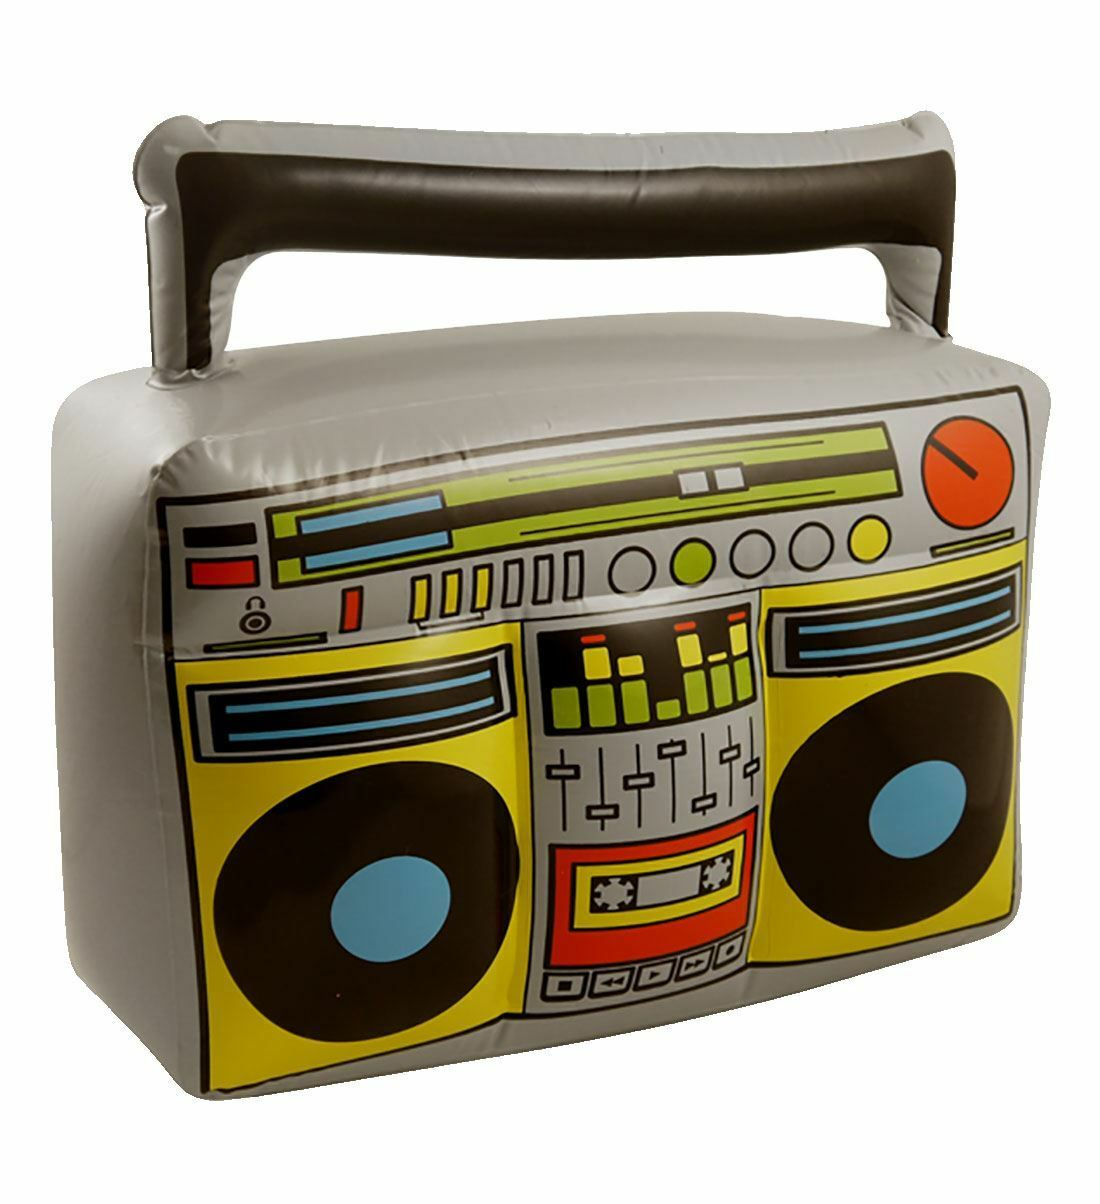 Inflatable Boom Box Blow Up Music Player Ghetto Blaster Fancy Dress Accessory